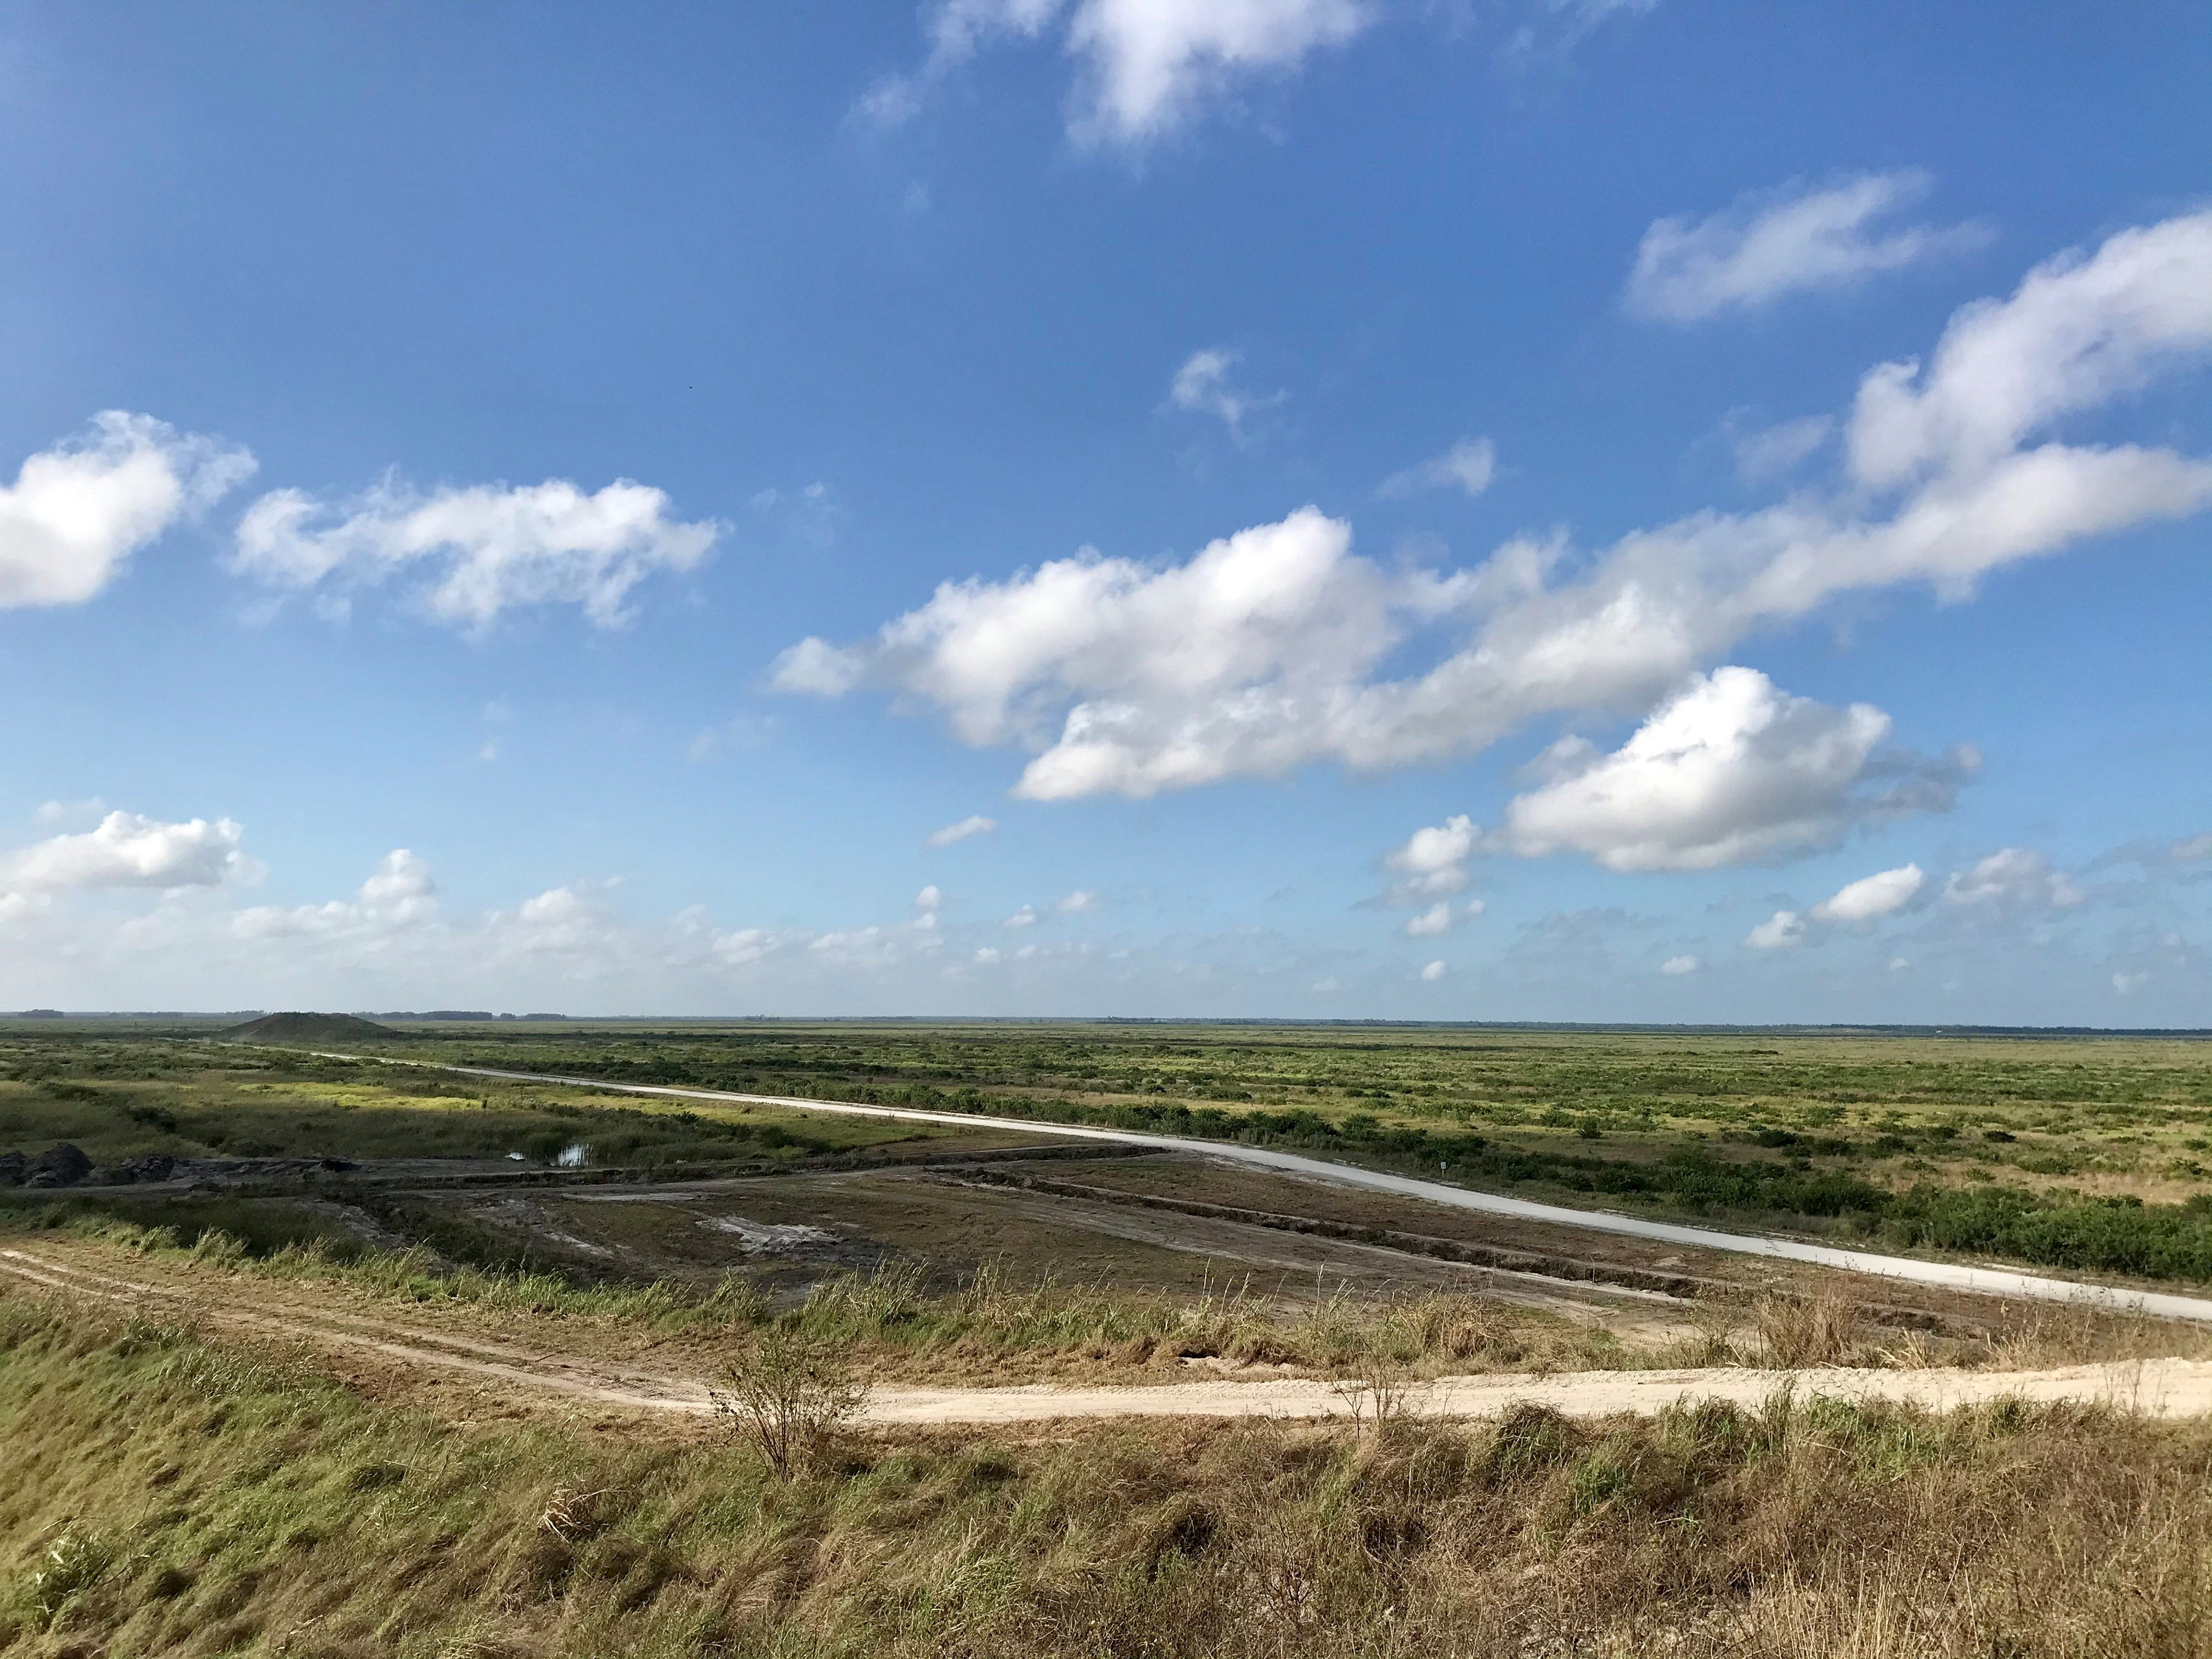 Caloosahatchee, EAA reservoirs at the top of water district work last year 3